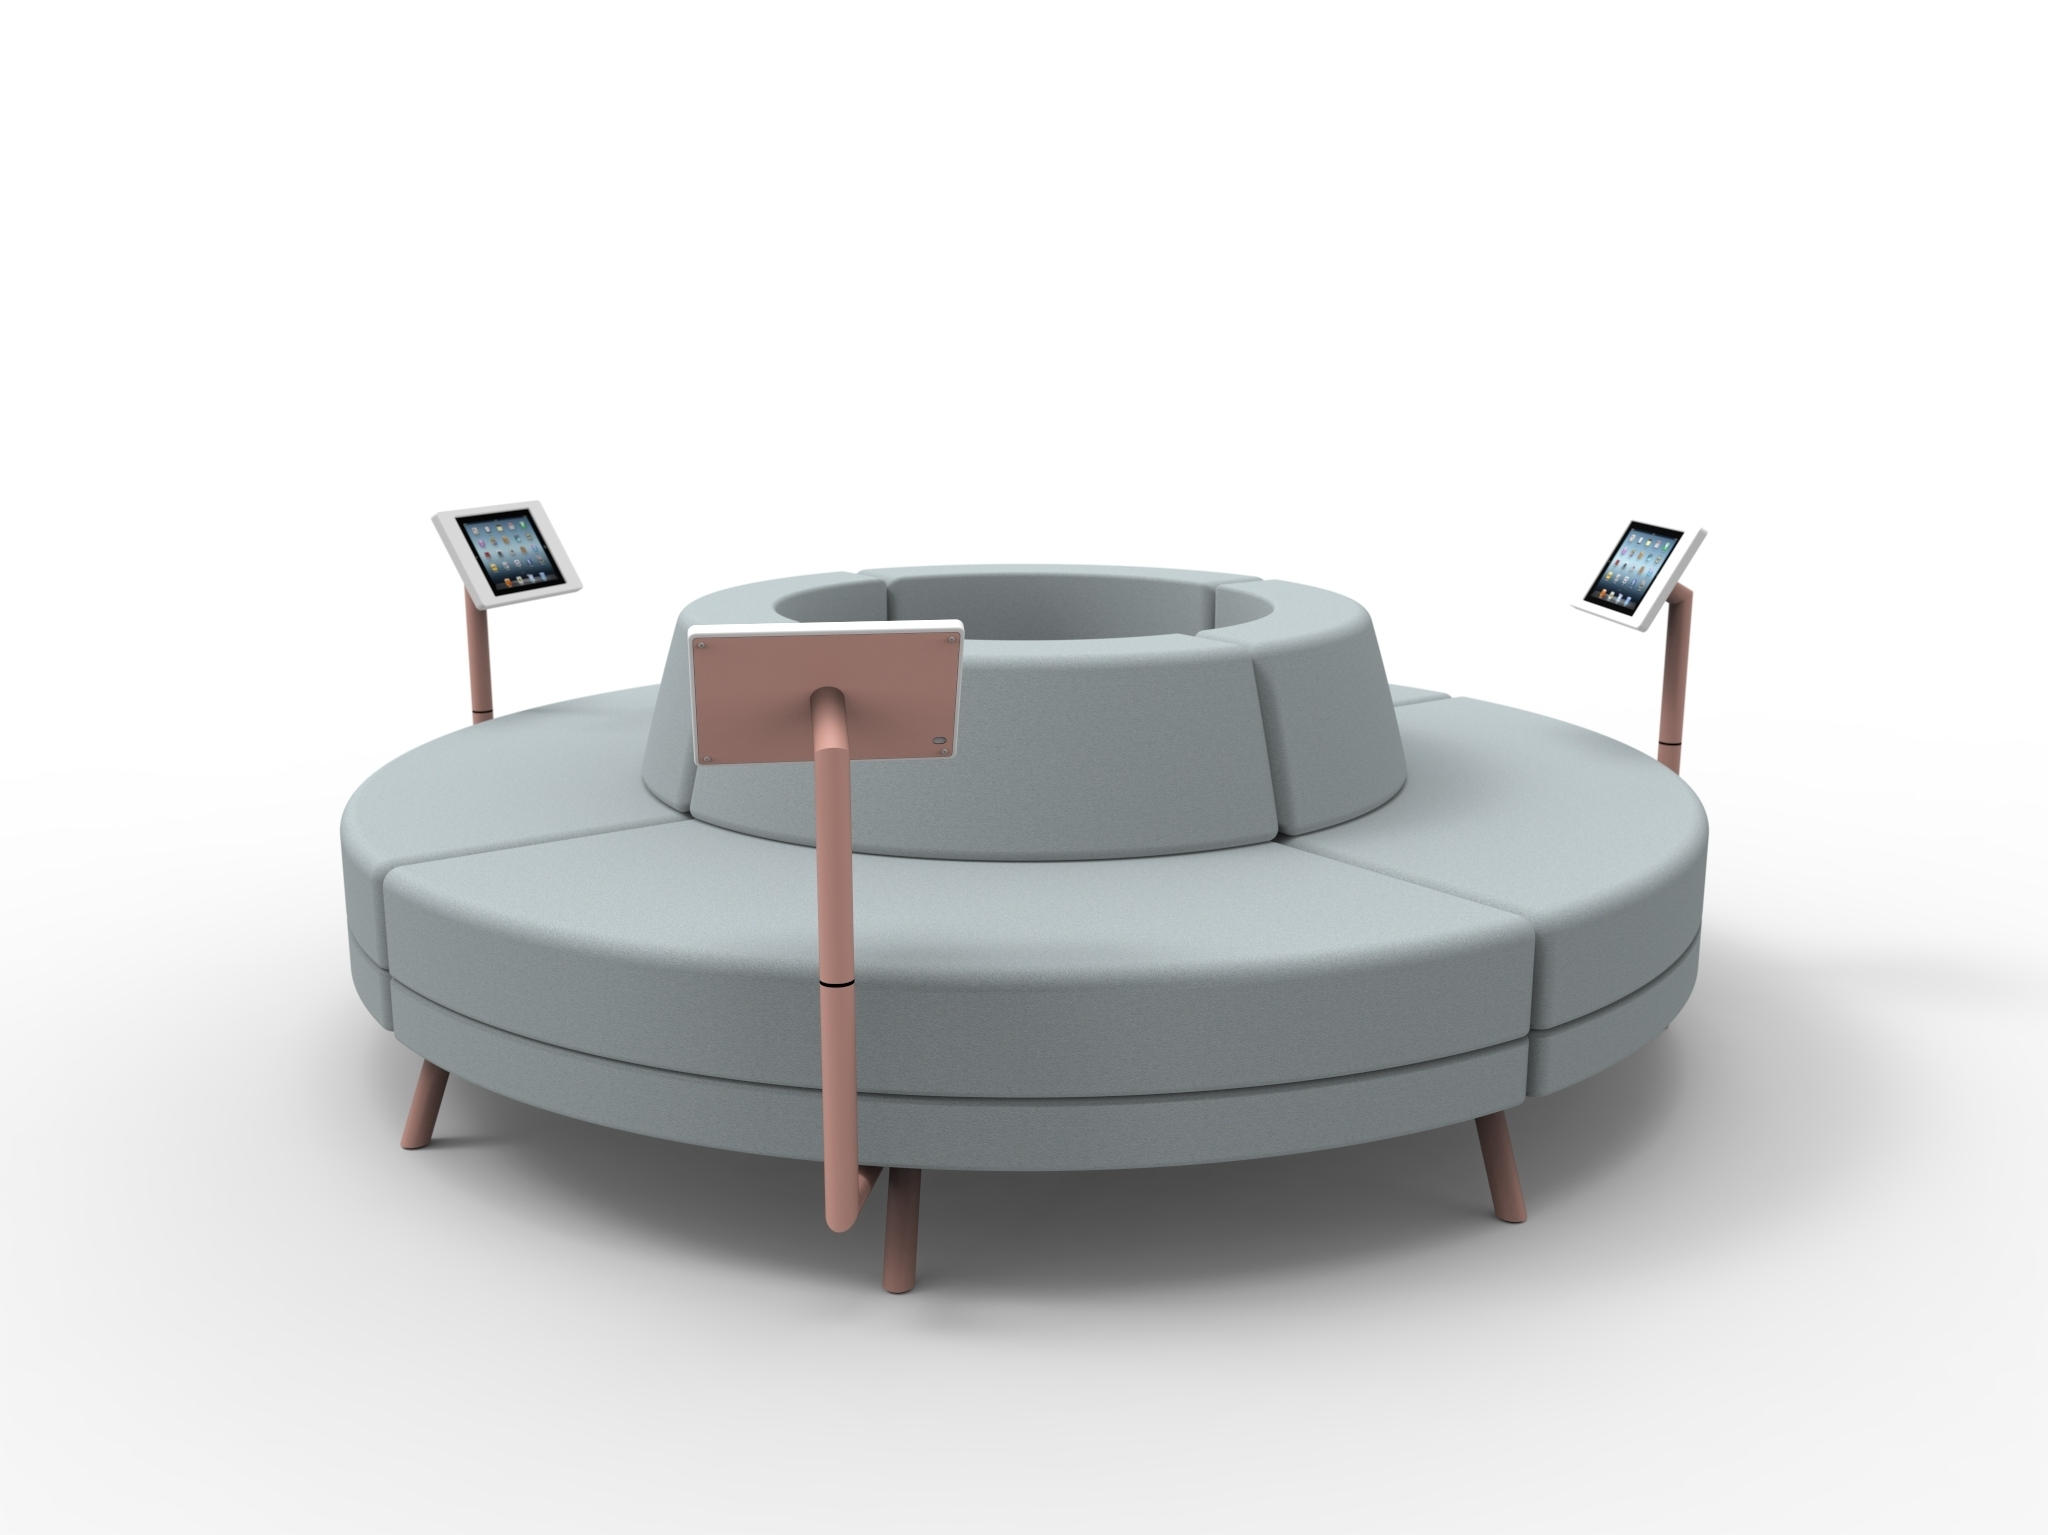 Circle Sofas Within Recent The Amazing Circular Sofa – Goodworksfurniture (View 10 of 20)